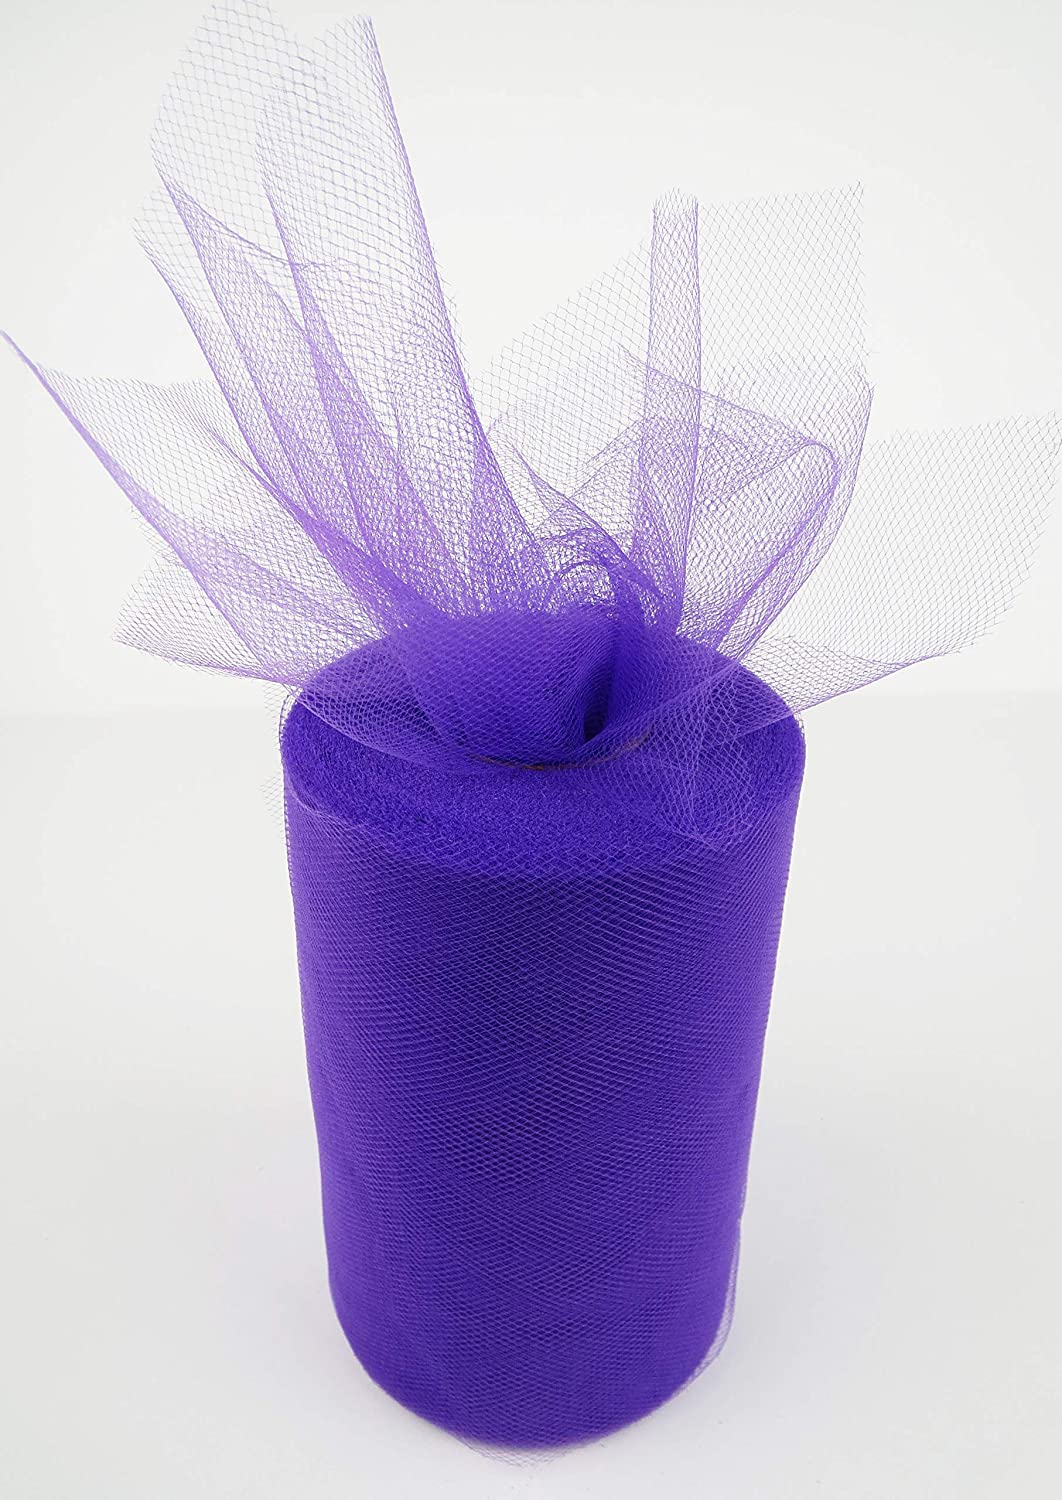 Blue Parties Weddings Tulle Roll 6 by 100 Yards 100/% Polyester Great for Birthdays